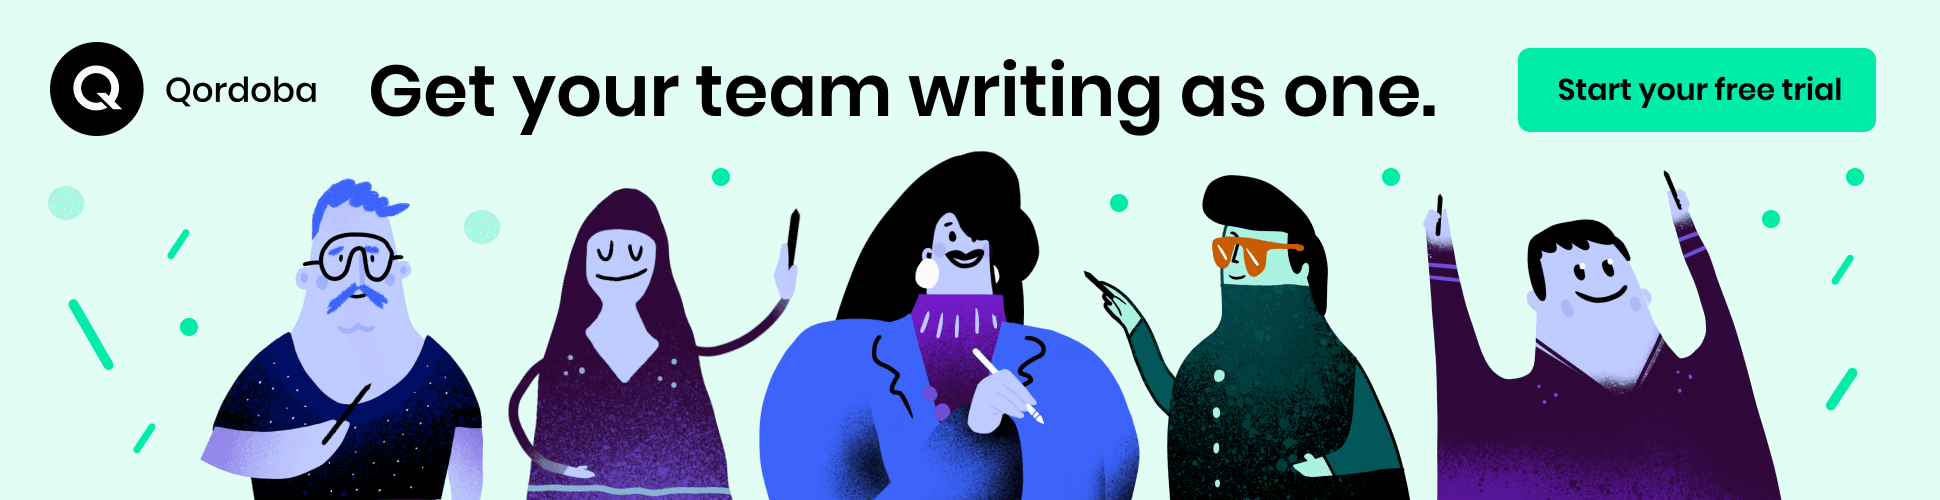 Get your team writing as one. Start your free Writer trial.